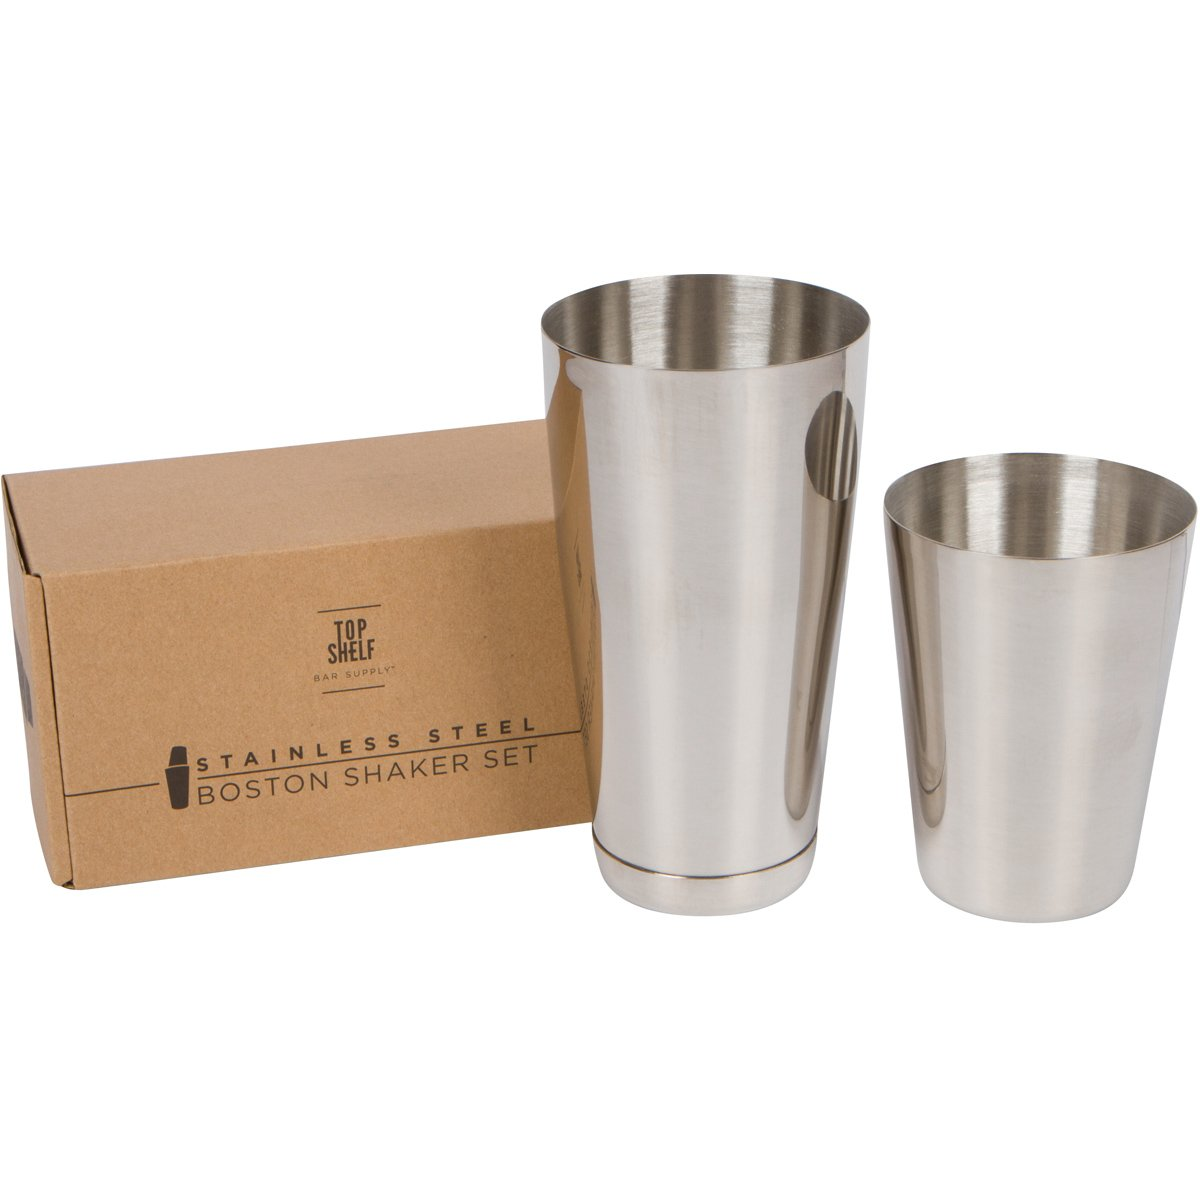 Stainless Steel Boston Shaker: 2-piece Set: 18oz Unweighted & 28oz Weighted Professional Bartender Cocktail Shaker by Top Shelf Bar Supply (Image #9)